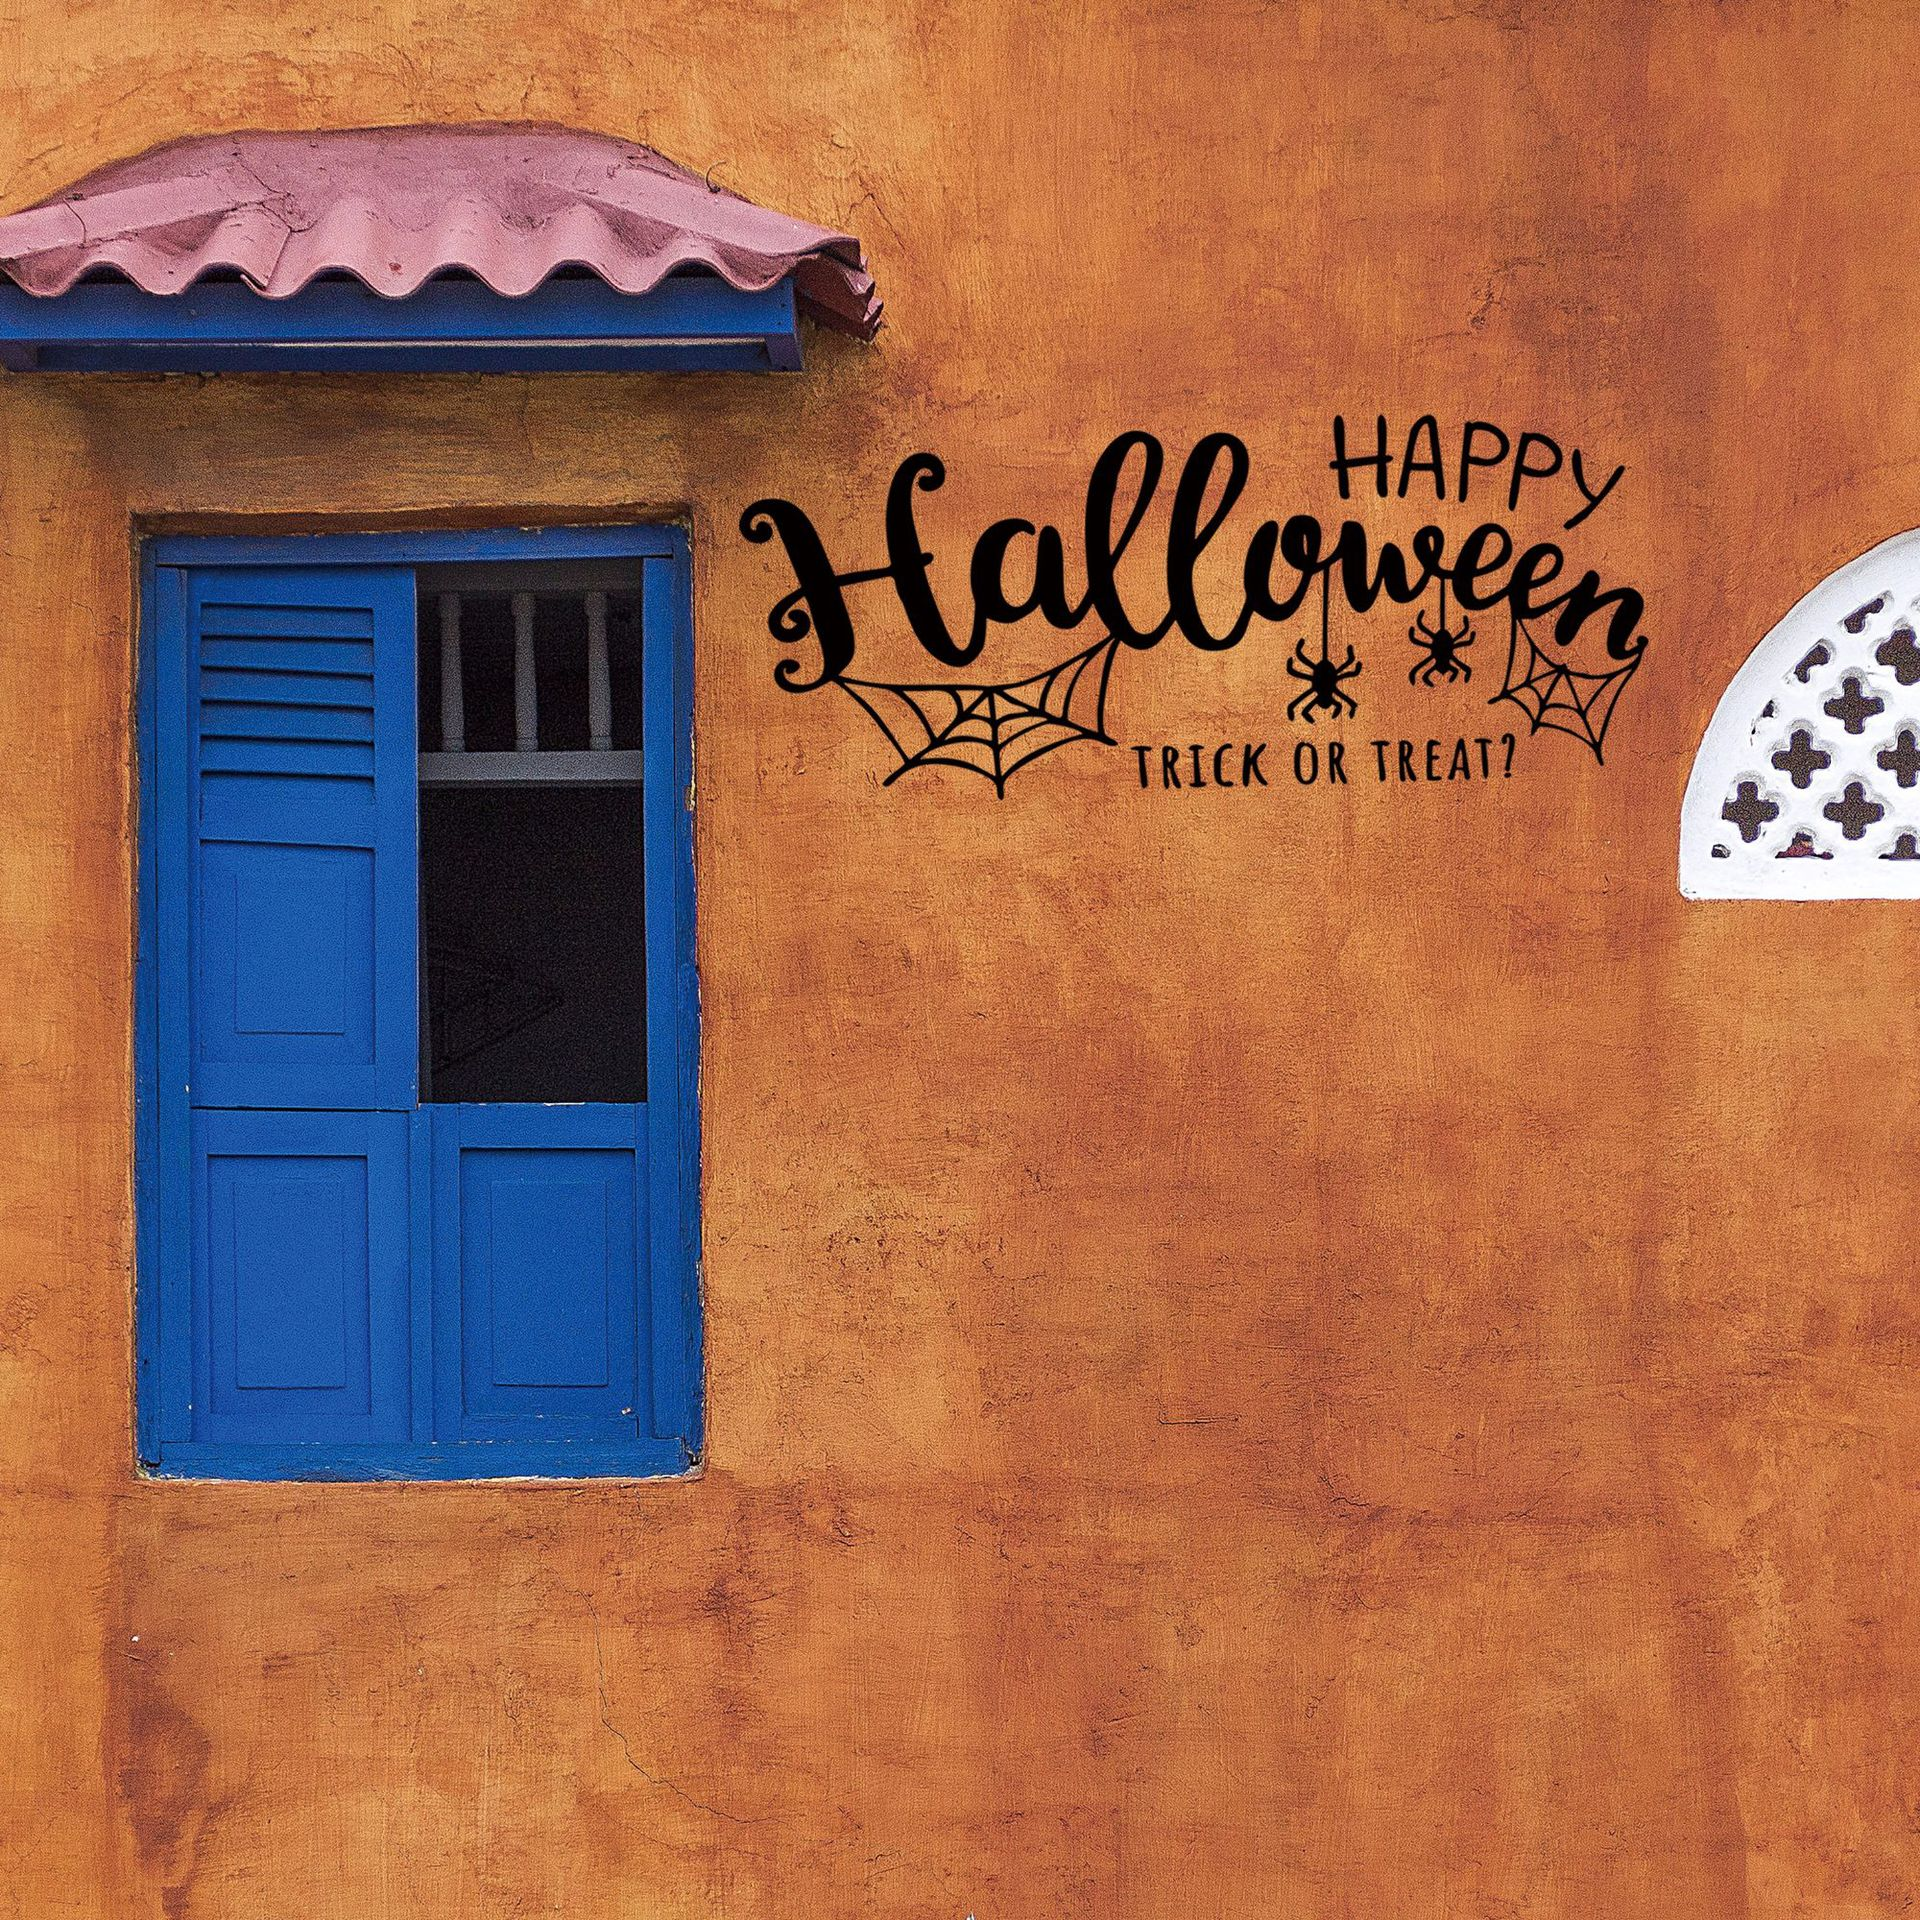 Mural Kamar Selamat Halloween Wall Sticker Dekorasi Kamar Mural Art Decal Sticker Mural Kamar Decal Wallpaper